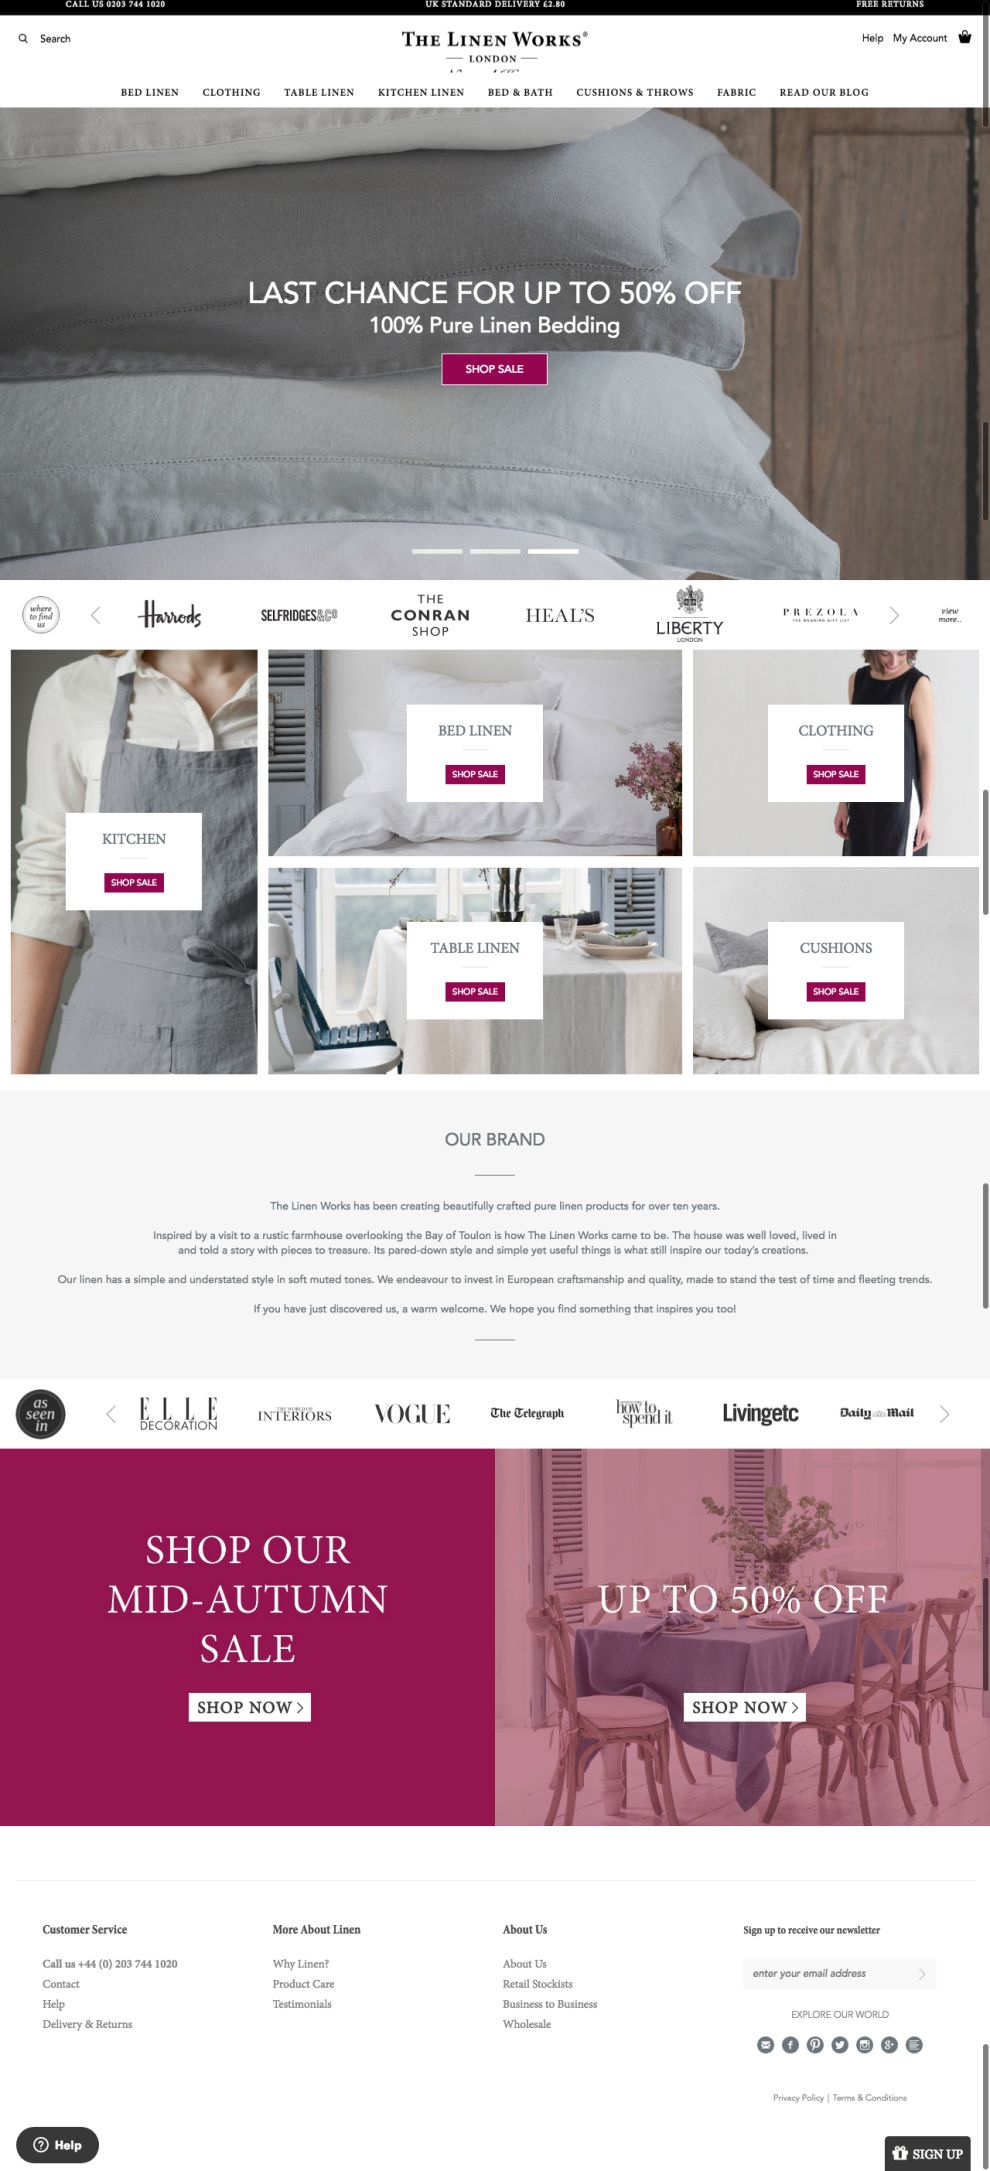 The Linen Works Corporate Homepage